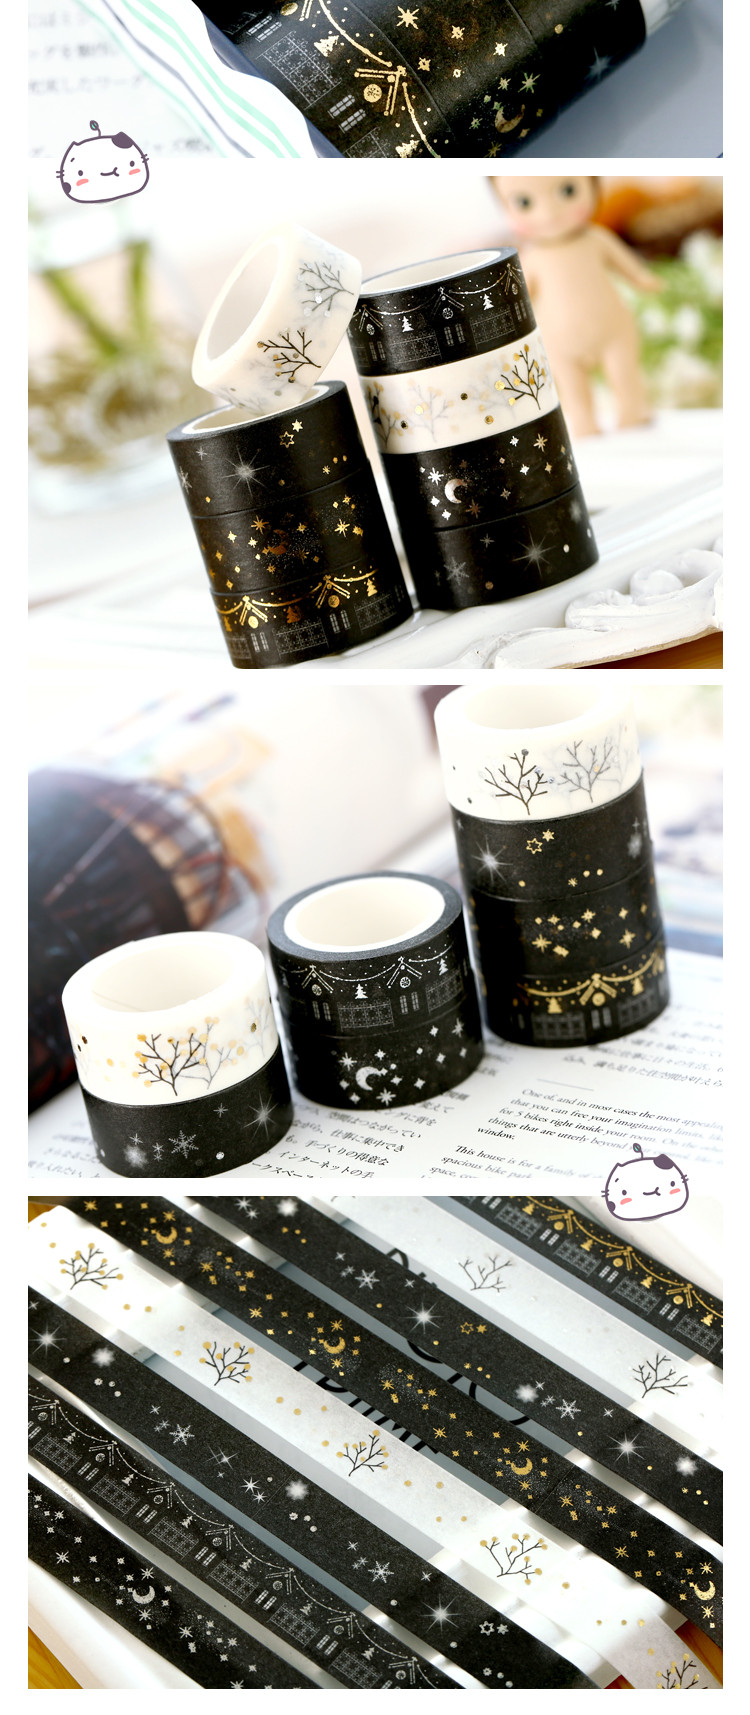 Japanese stationery tape white black adhesive paper tape silver Gold foil washi tape